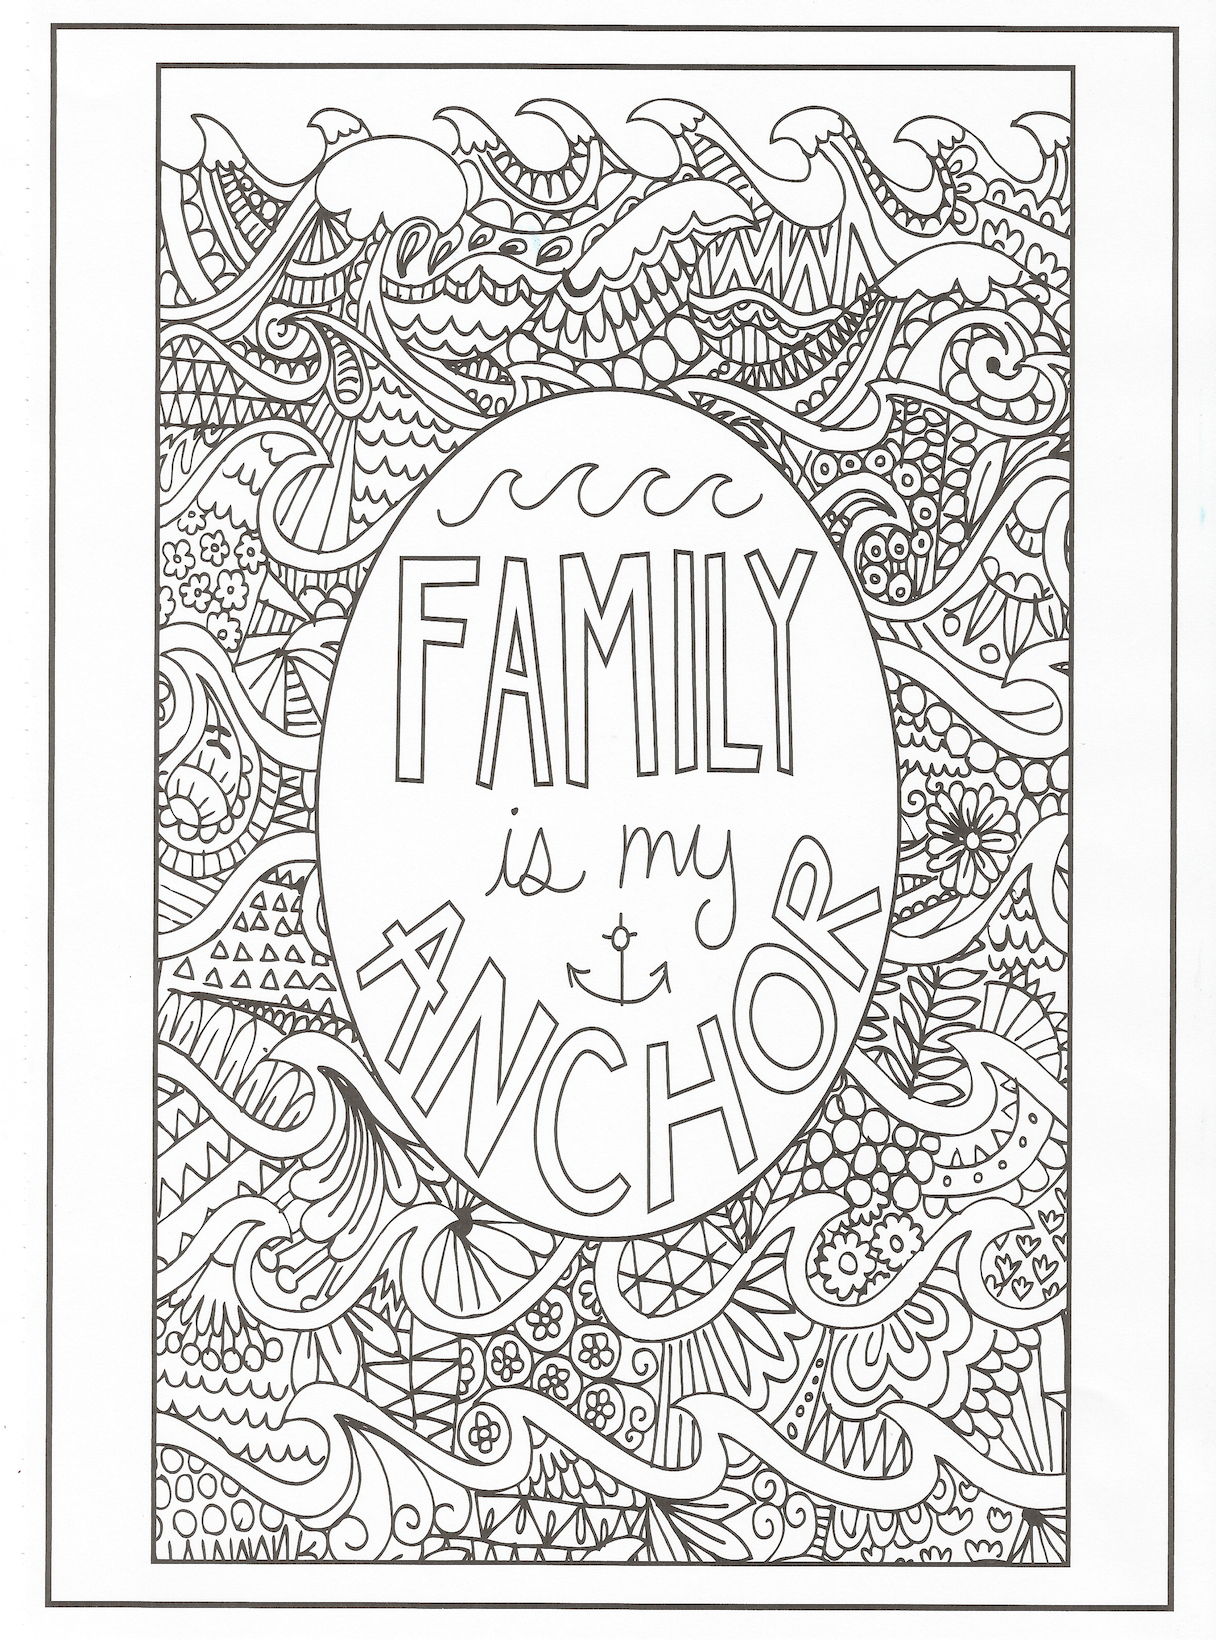 Positive Affirmation Coloring Pages  Collection 13r - Free For kids